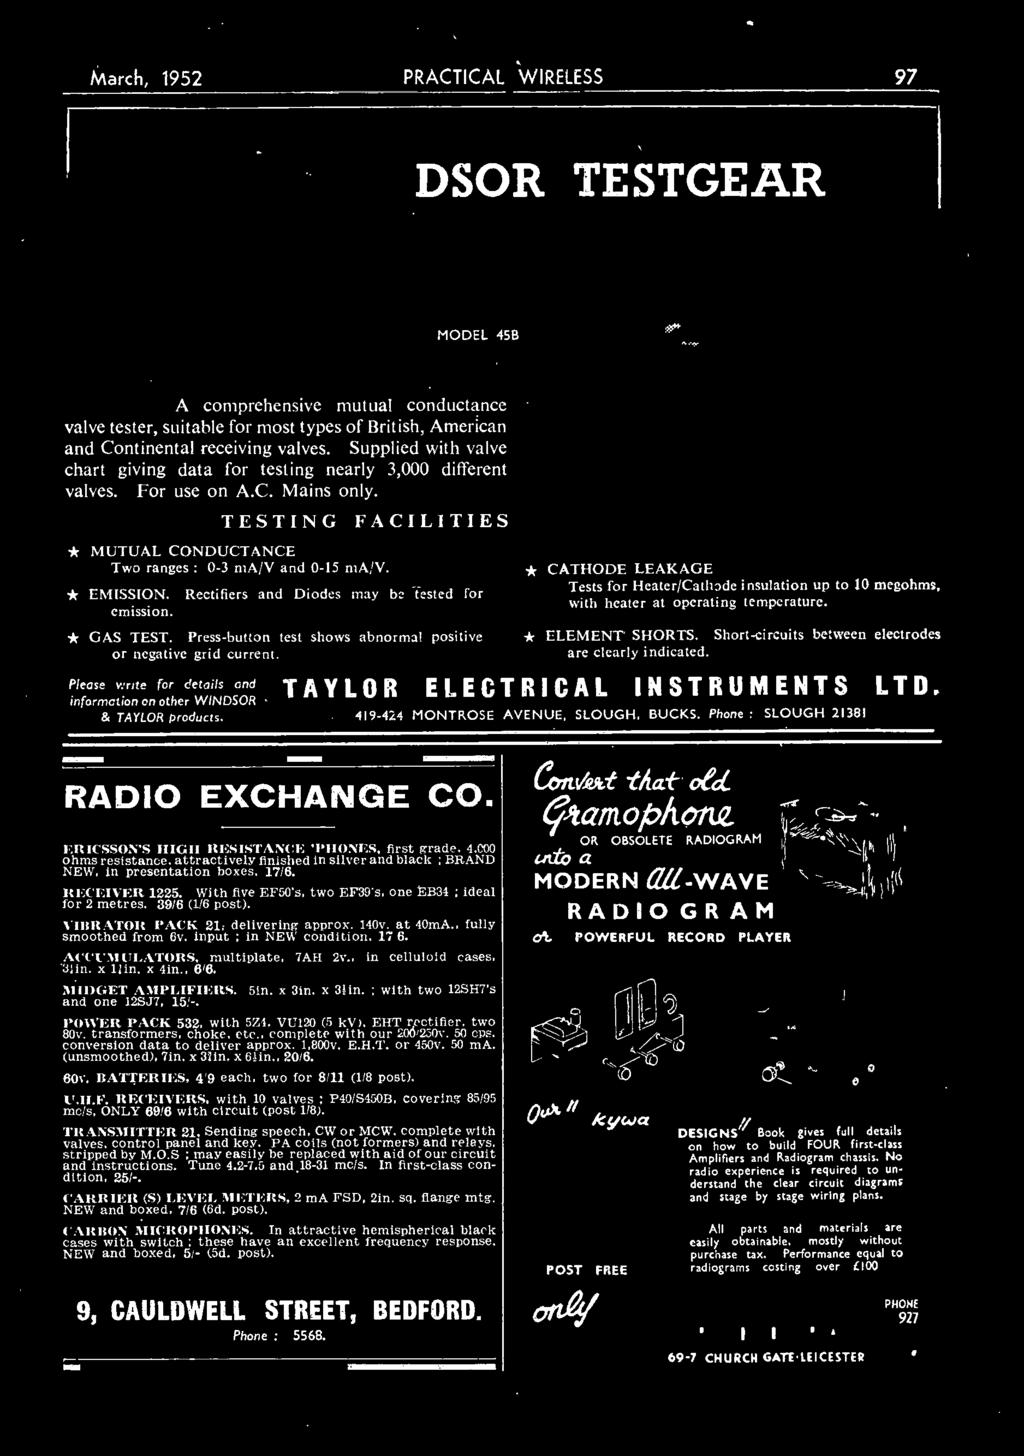 Fj Cam M Editor Inside Free 1f Blueprint Of Personal Ingersoll Rand Transporter Wiring Diagram Download Element Shorts Short Circuits Between Electrodes Are Clearly Indicated Taylor Electrical Instruments